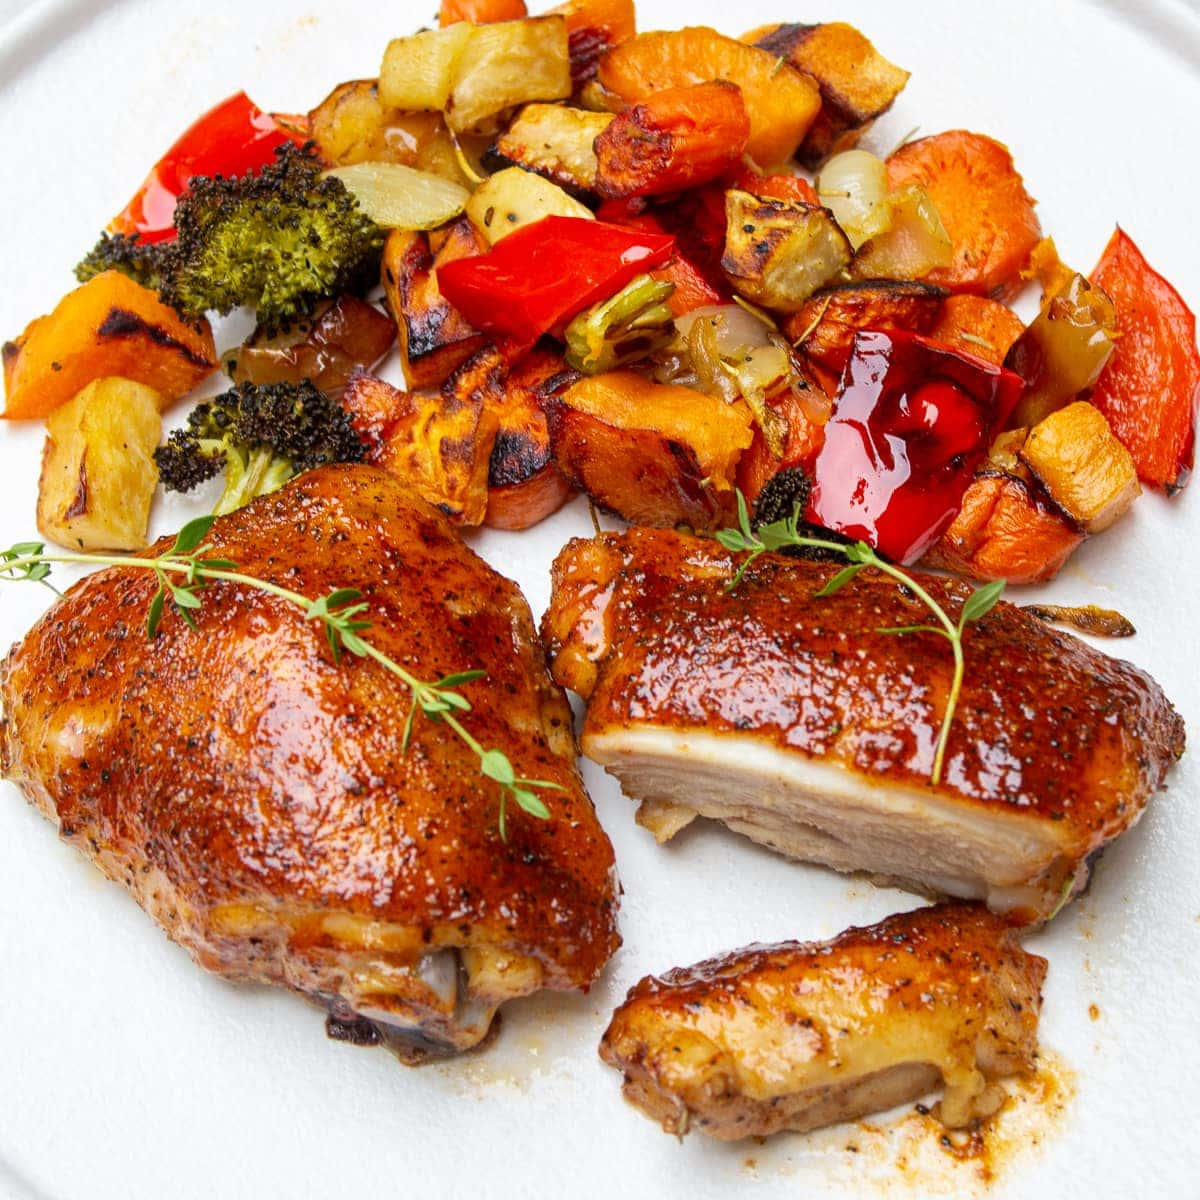 cooked chicken thighs on plate with vegetables